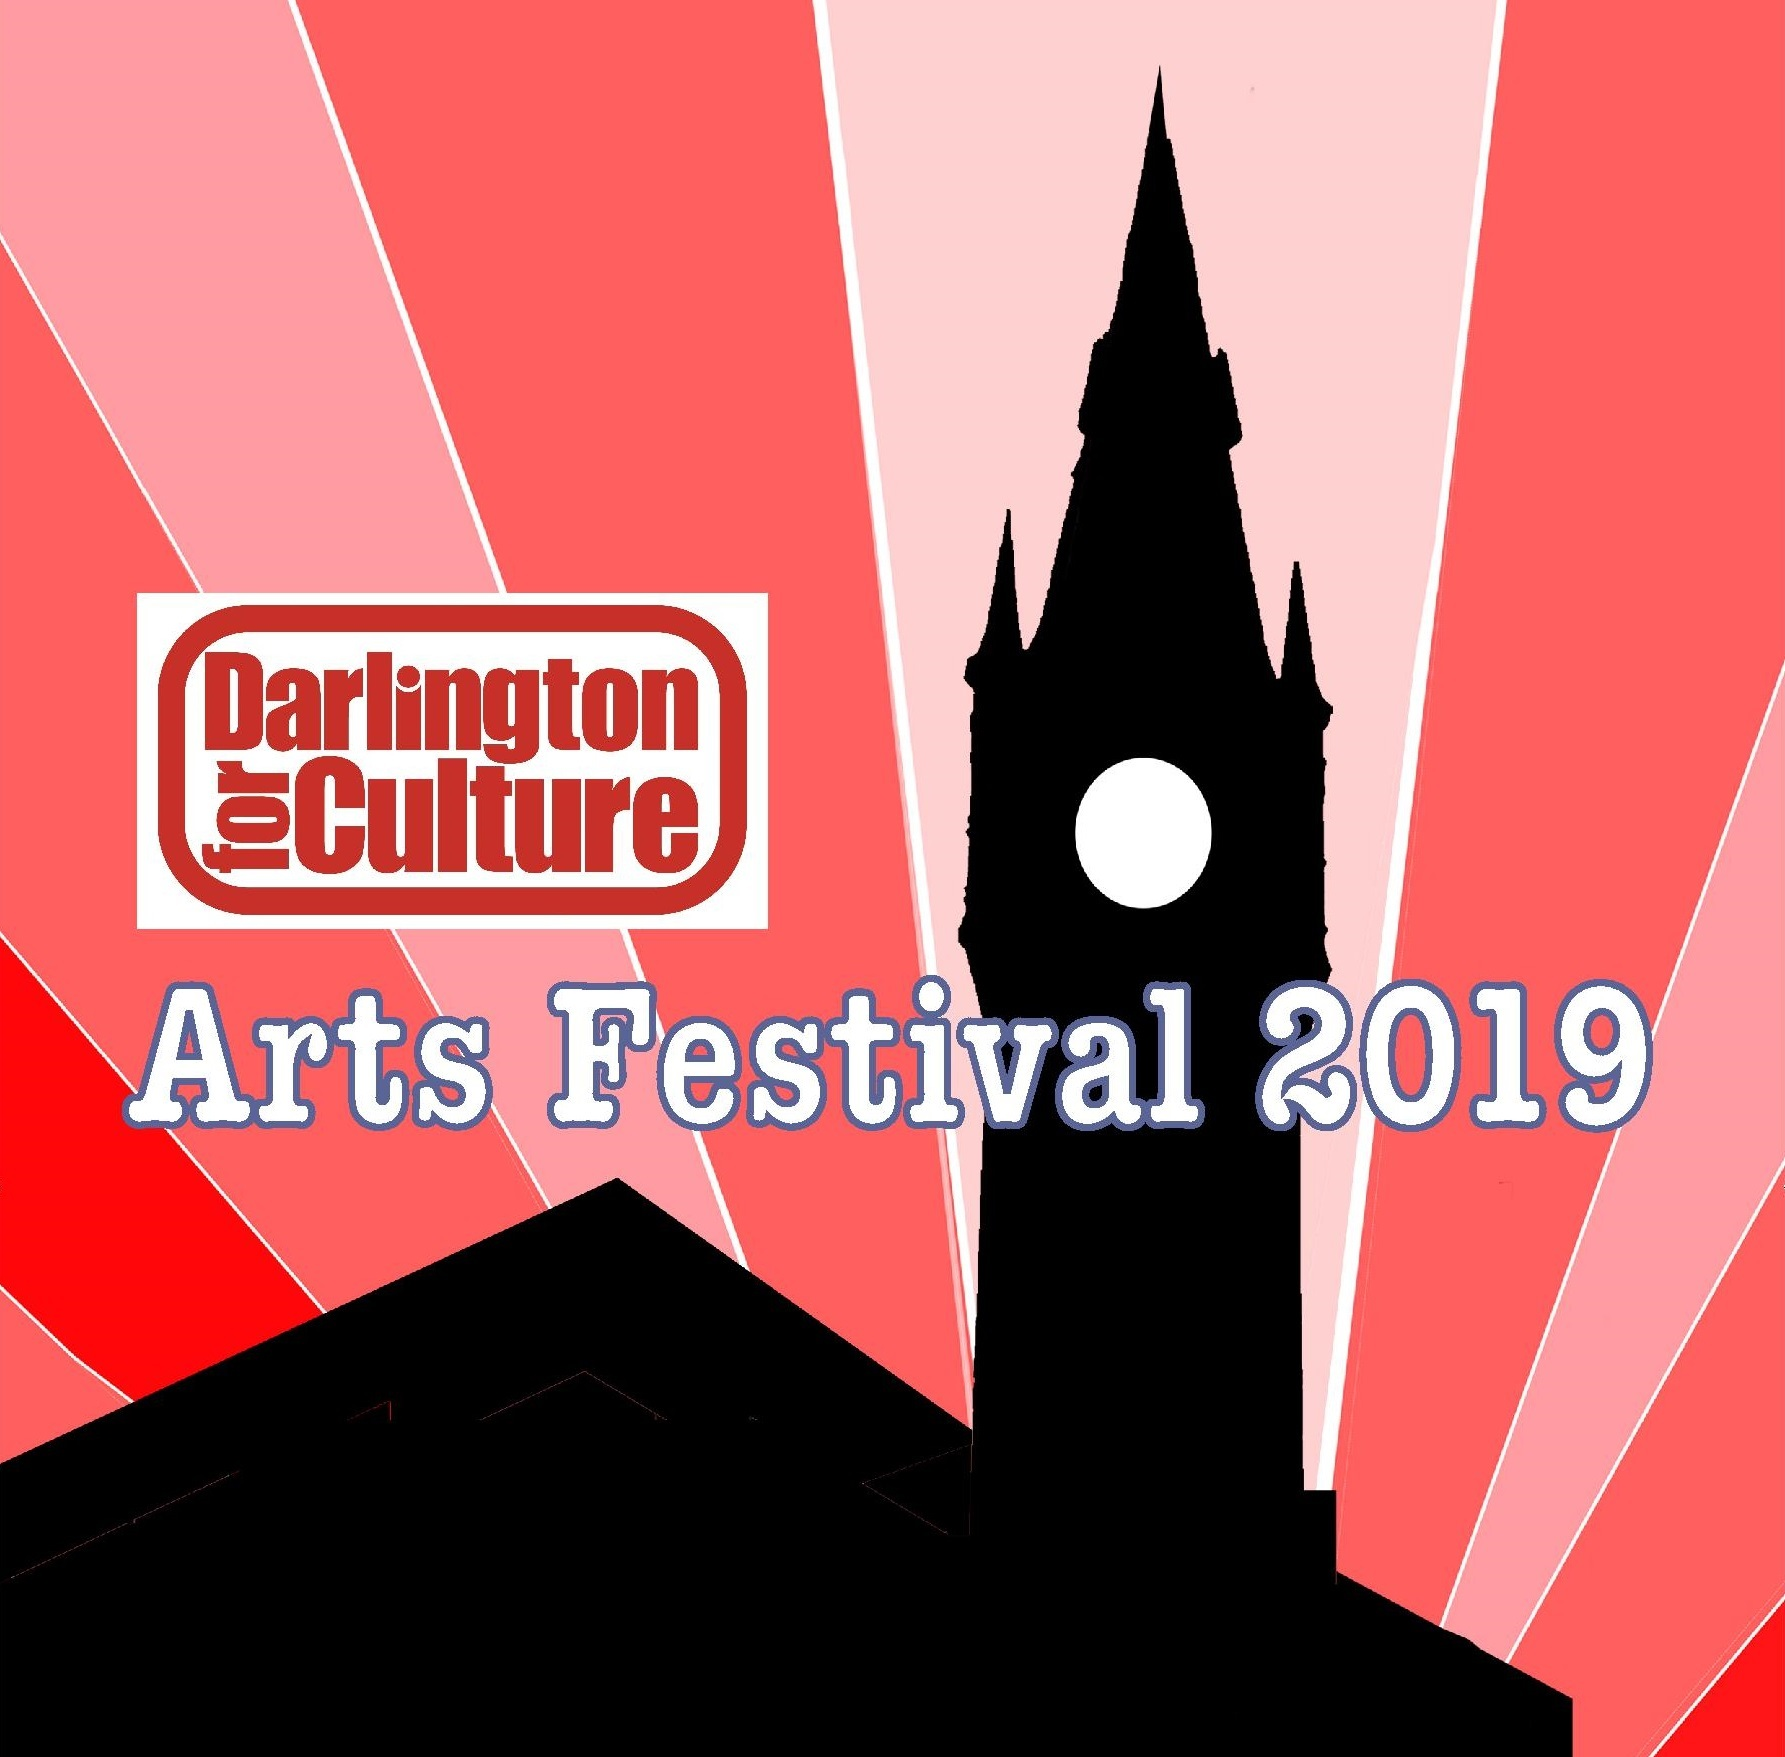 CASTING CALL: Darlington Arts Festival are looking for groups to take part in this year's event